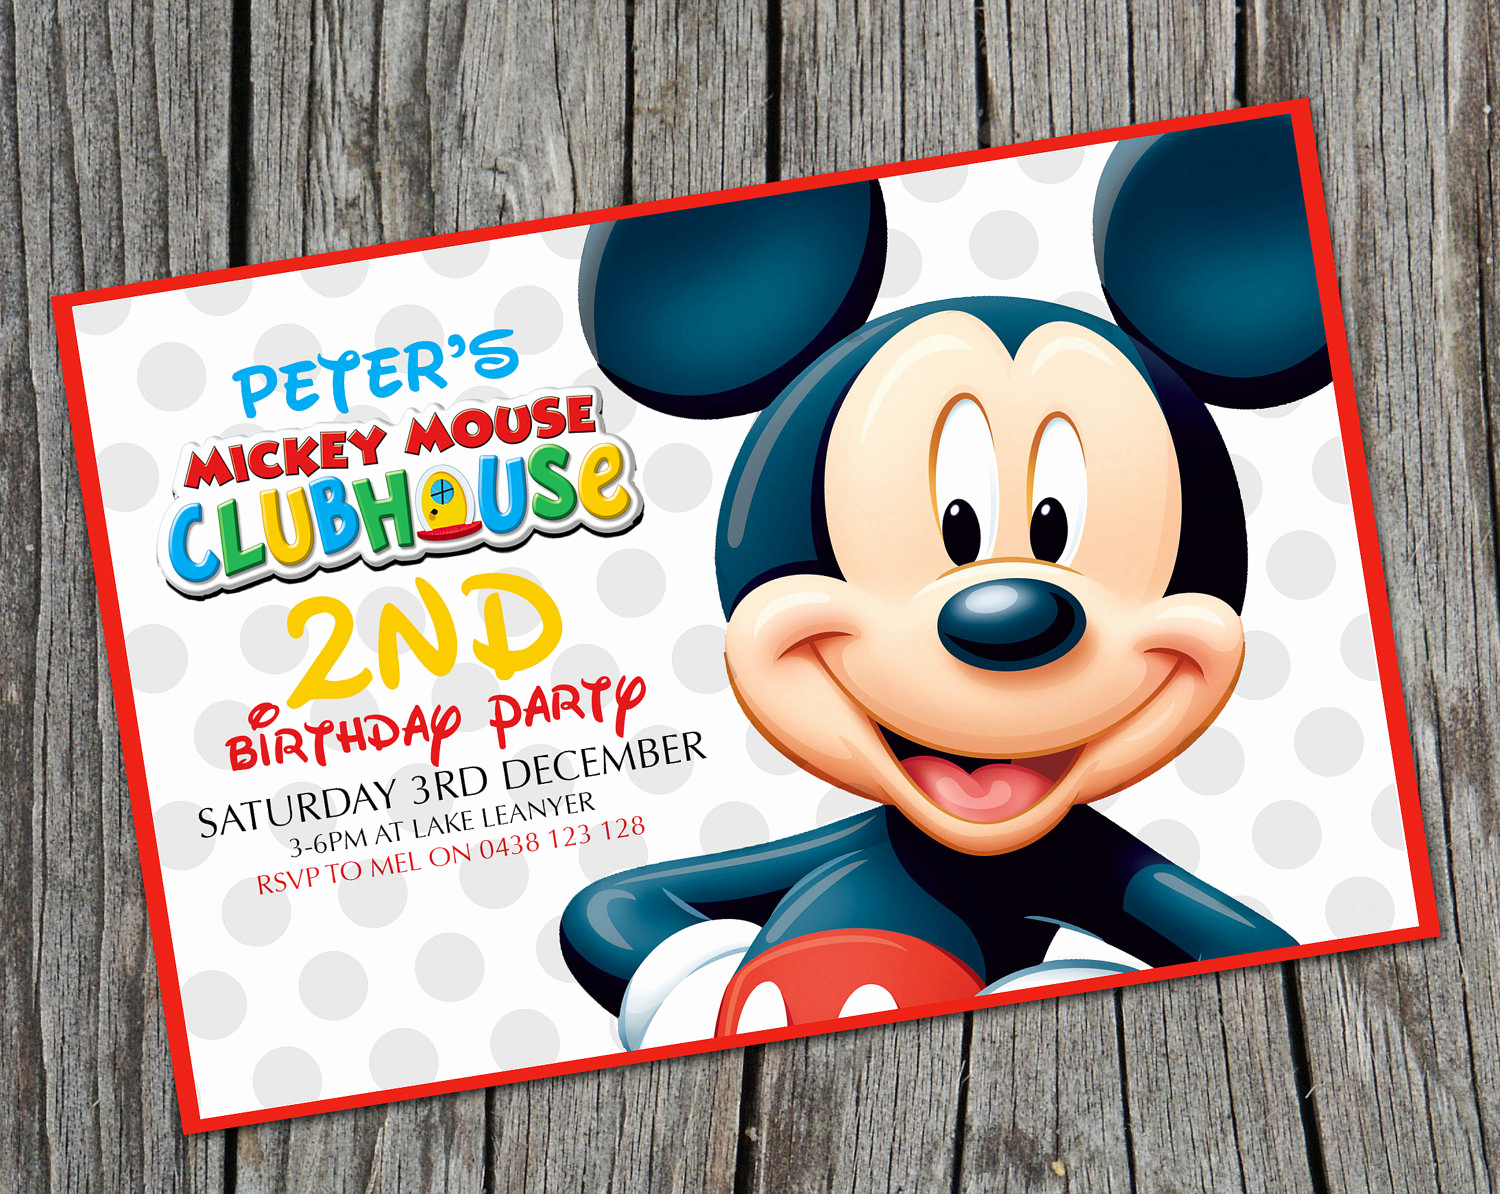 Mickey Mouse Club House Invitation Unique Kids Birthday Invitation Mickey Mouse Clubhouse Modern